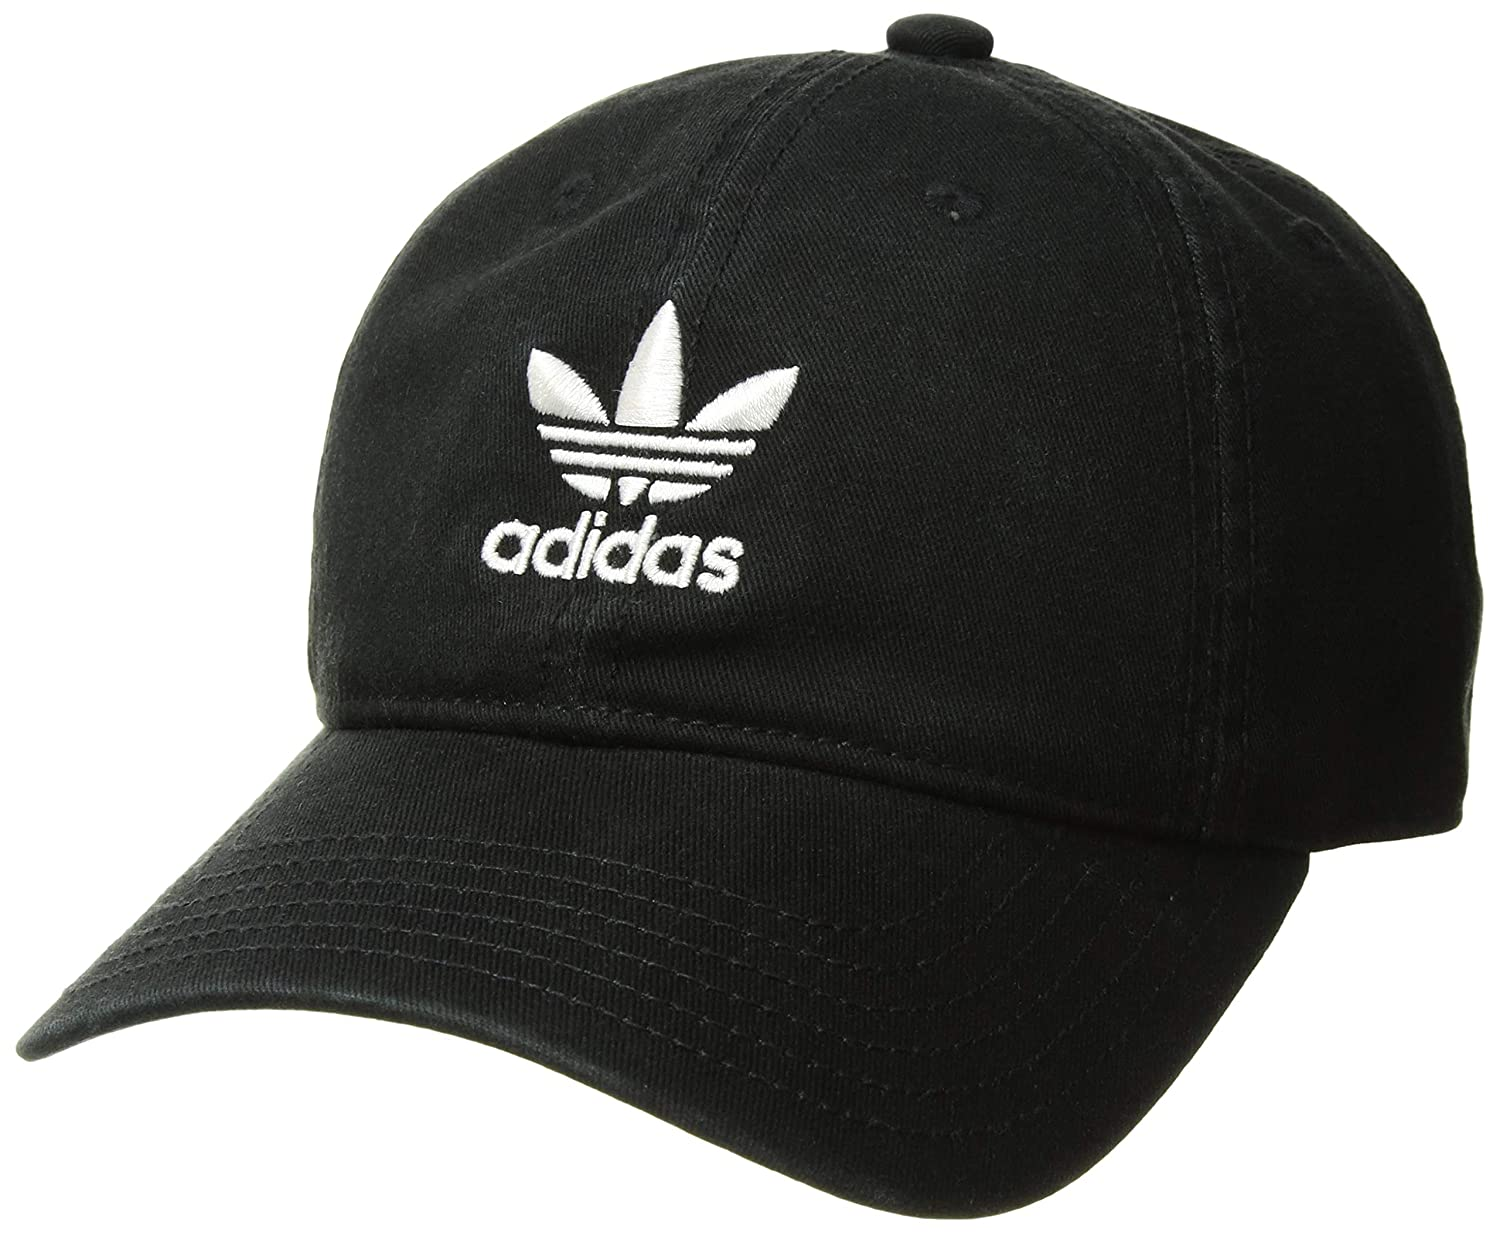 a0383c50 adidas Boys Youth Originals Washed Relaxed Cap